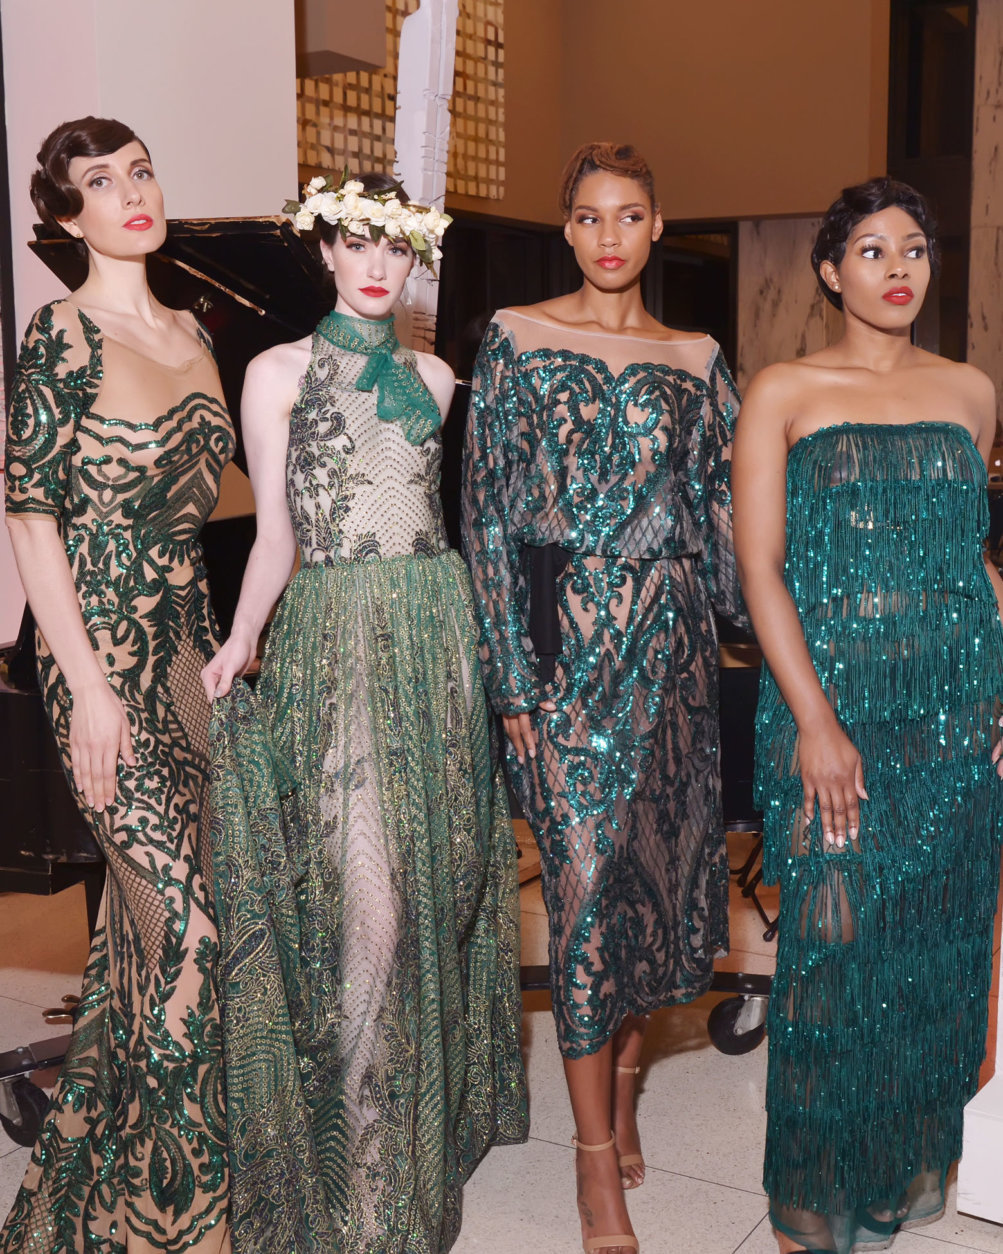 Models pose in dresses by Washington, DC-based designer Ean Williams following the runway show at DC Fashion Week's 2018 International Couture Collections at the Embassy of France